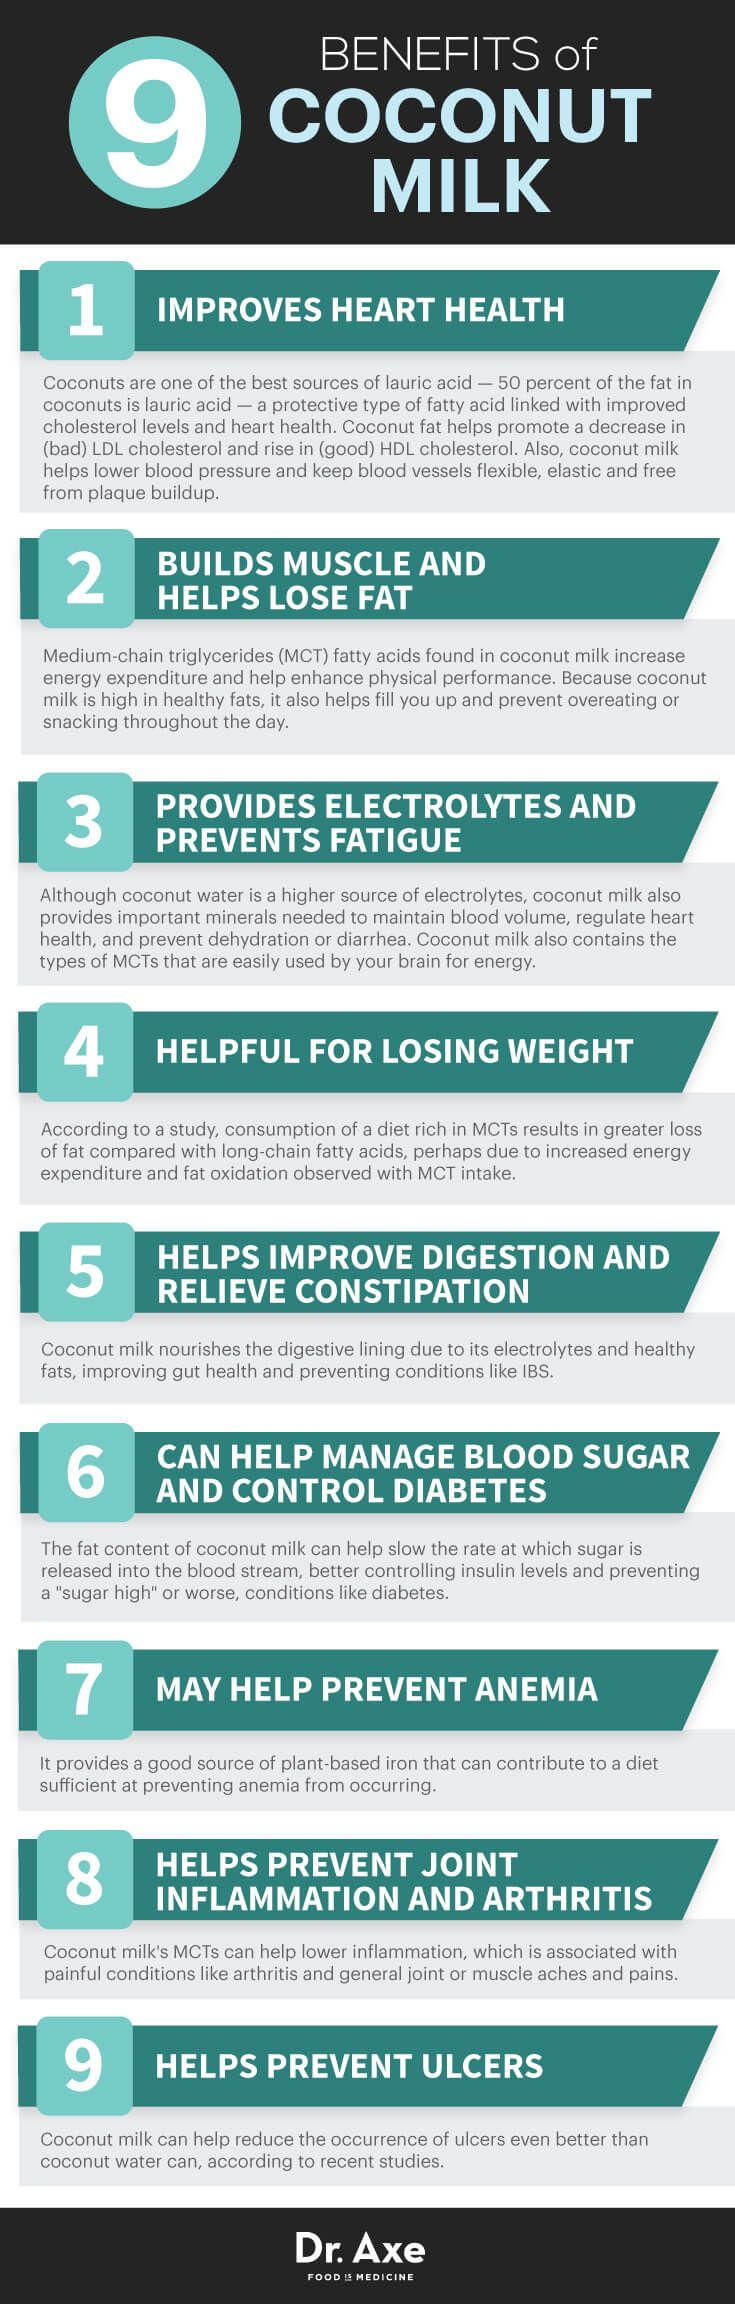 If you're looking to improve your heart, muscle and immunity, look to coconut milk nutrition. Read about the many benefits of coconut milk.